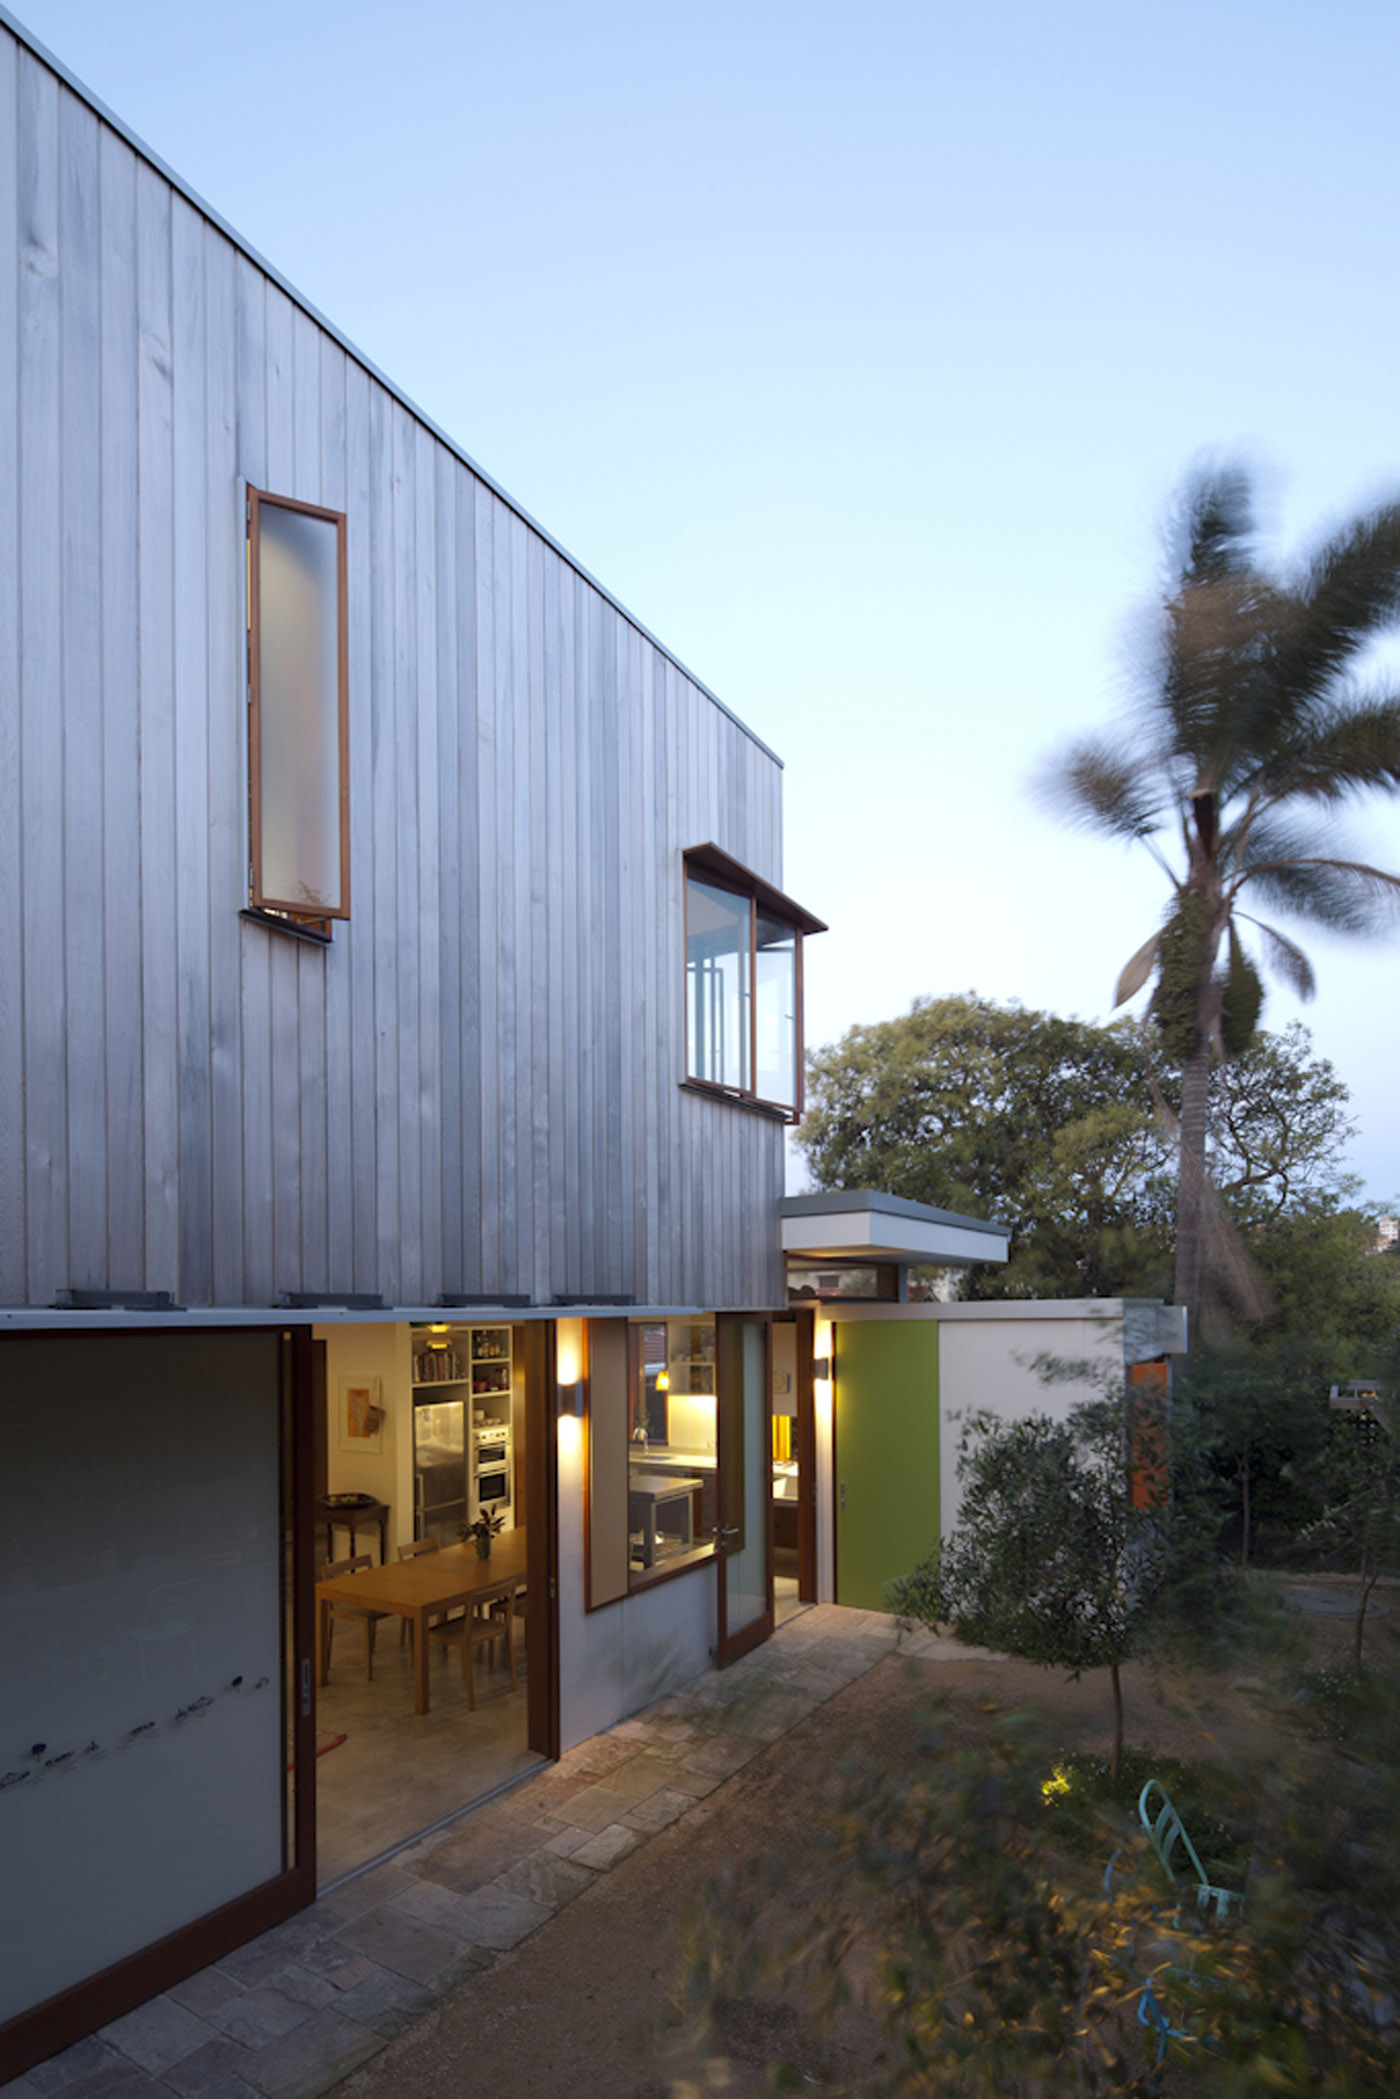 Campbell House by award winning Sydney residential architecture firm Sam Crawford Architects. Timber cladded addition to the existing house